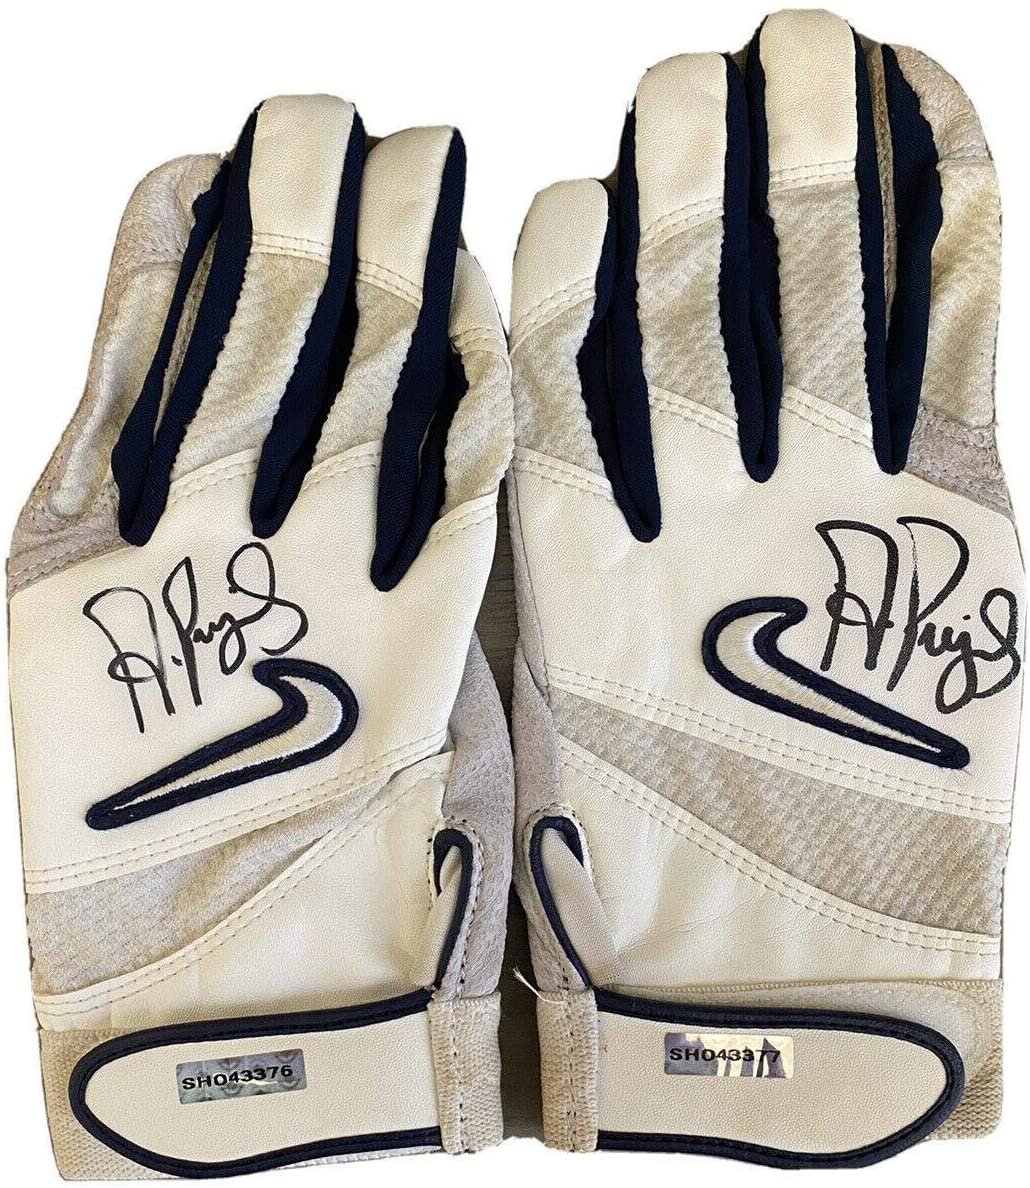 Albert Pujols St. Louis Cardinals Signed Game Used/Worn Batting Gloves PFF - Upper Deck Certified - MLB Game Used Gloves